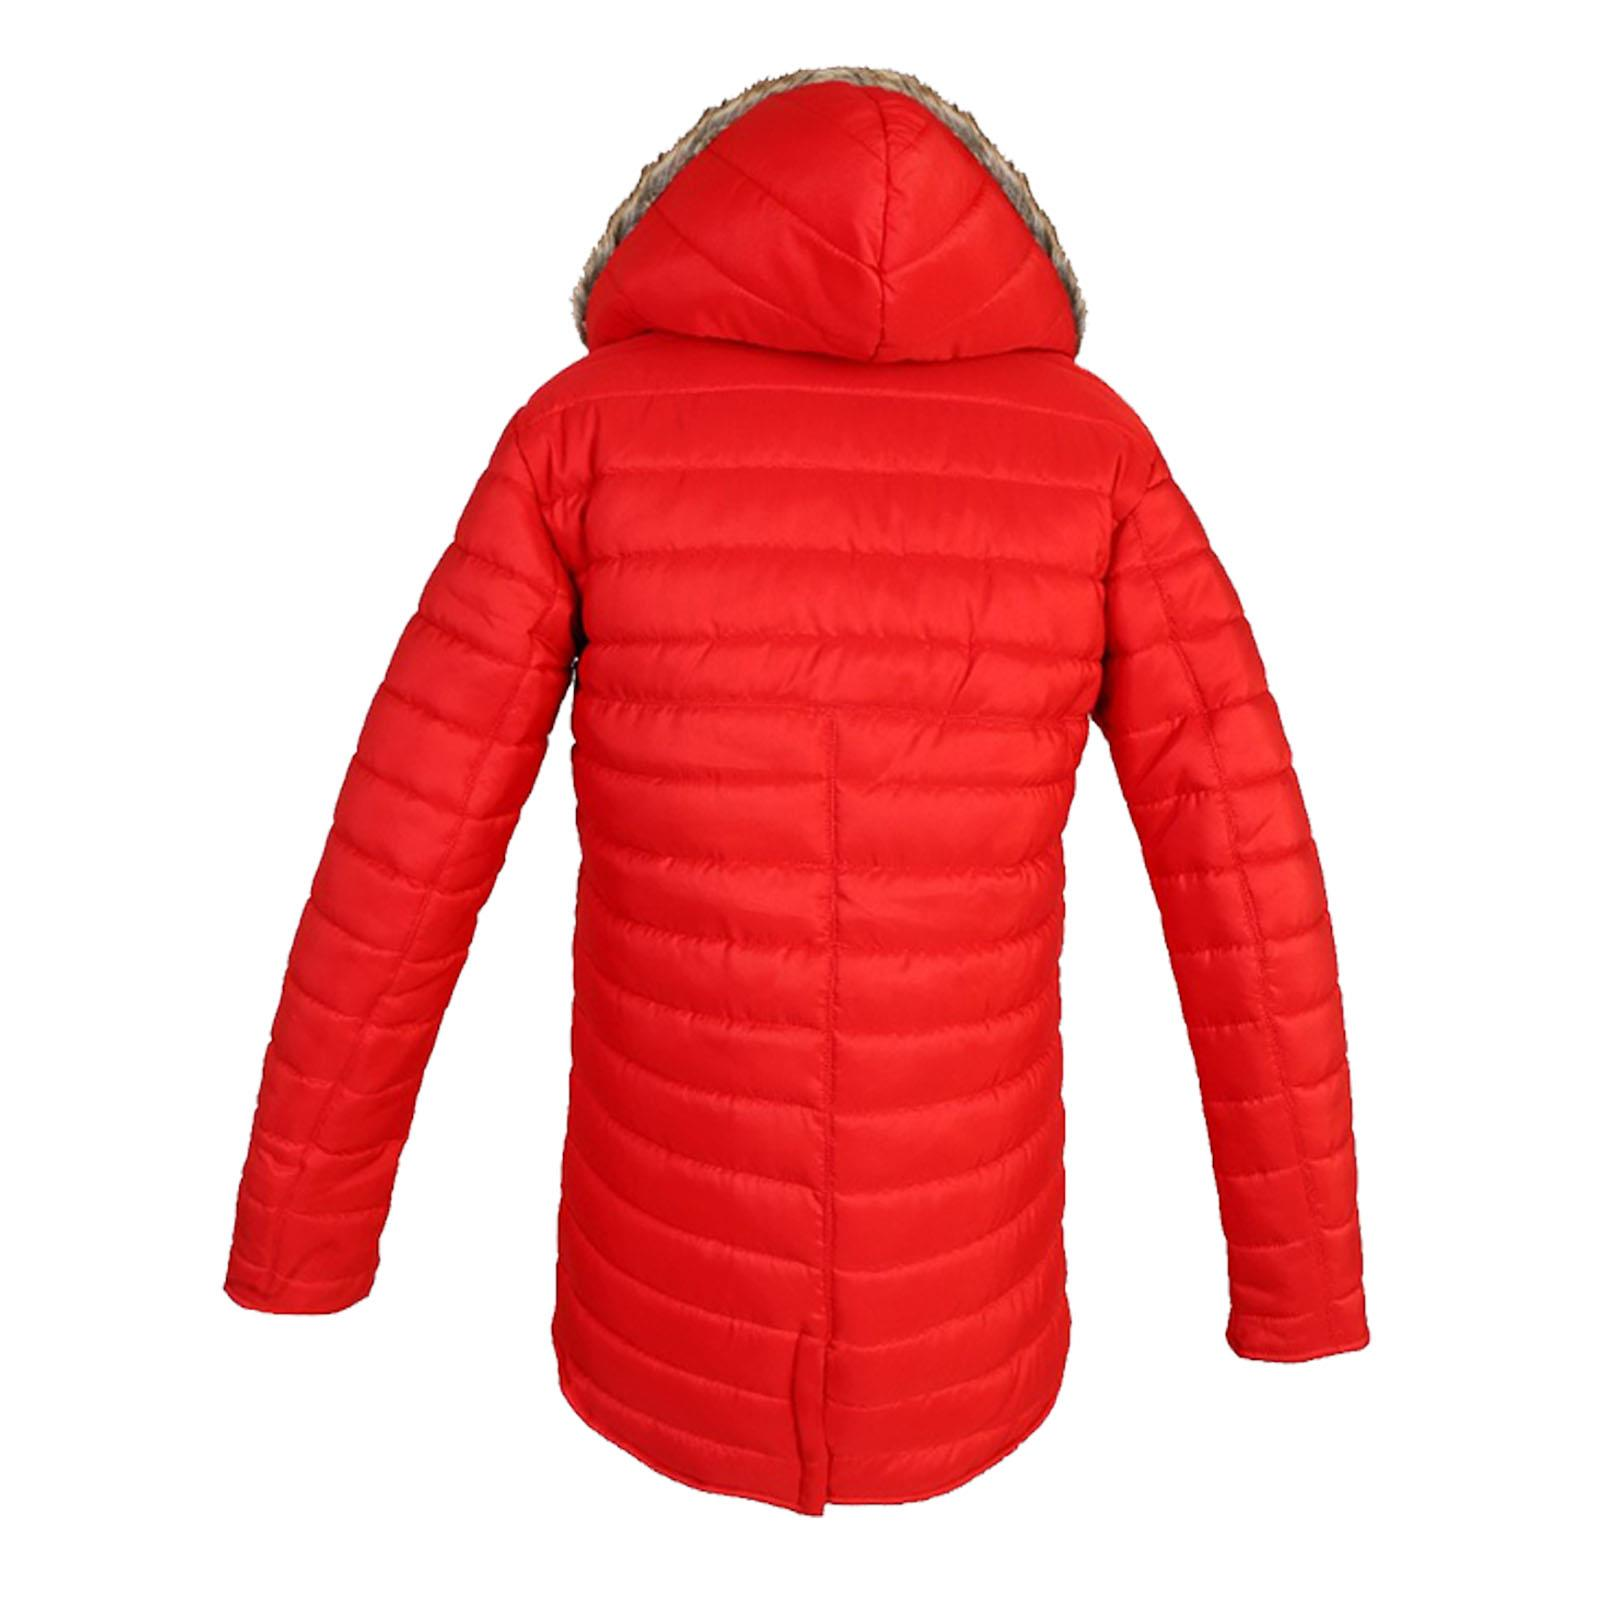 Women Faux Fur Quilted Padded Puffer Jacket Ladies Warm Zip Up Hooded Parka Coat